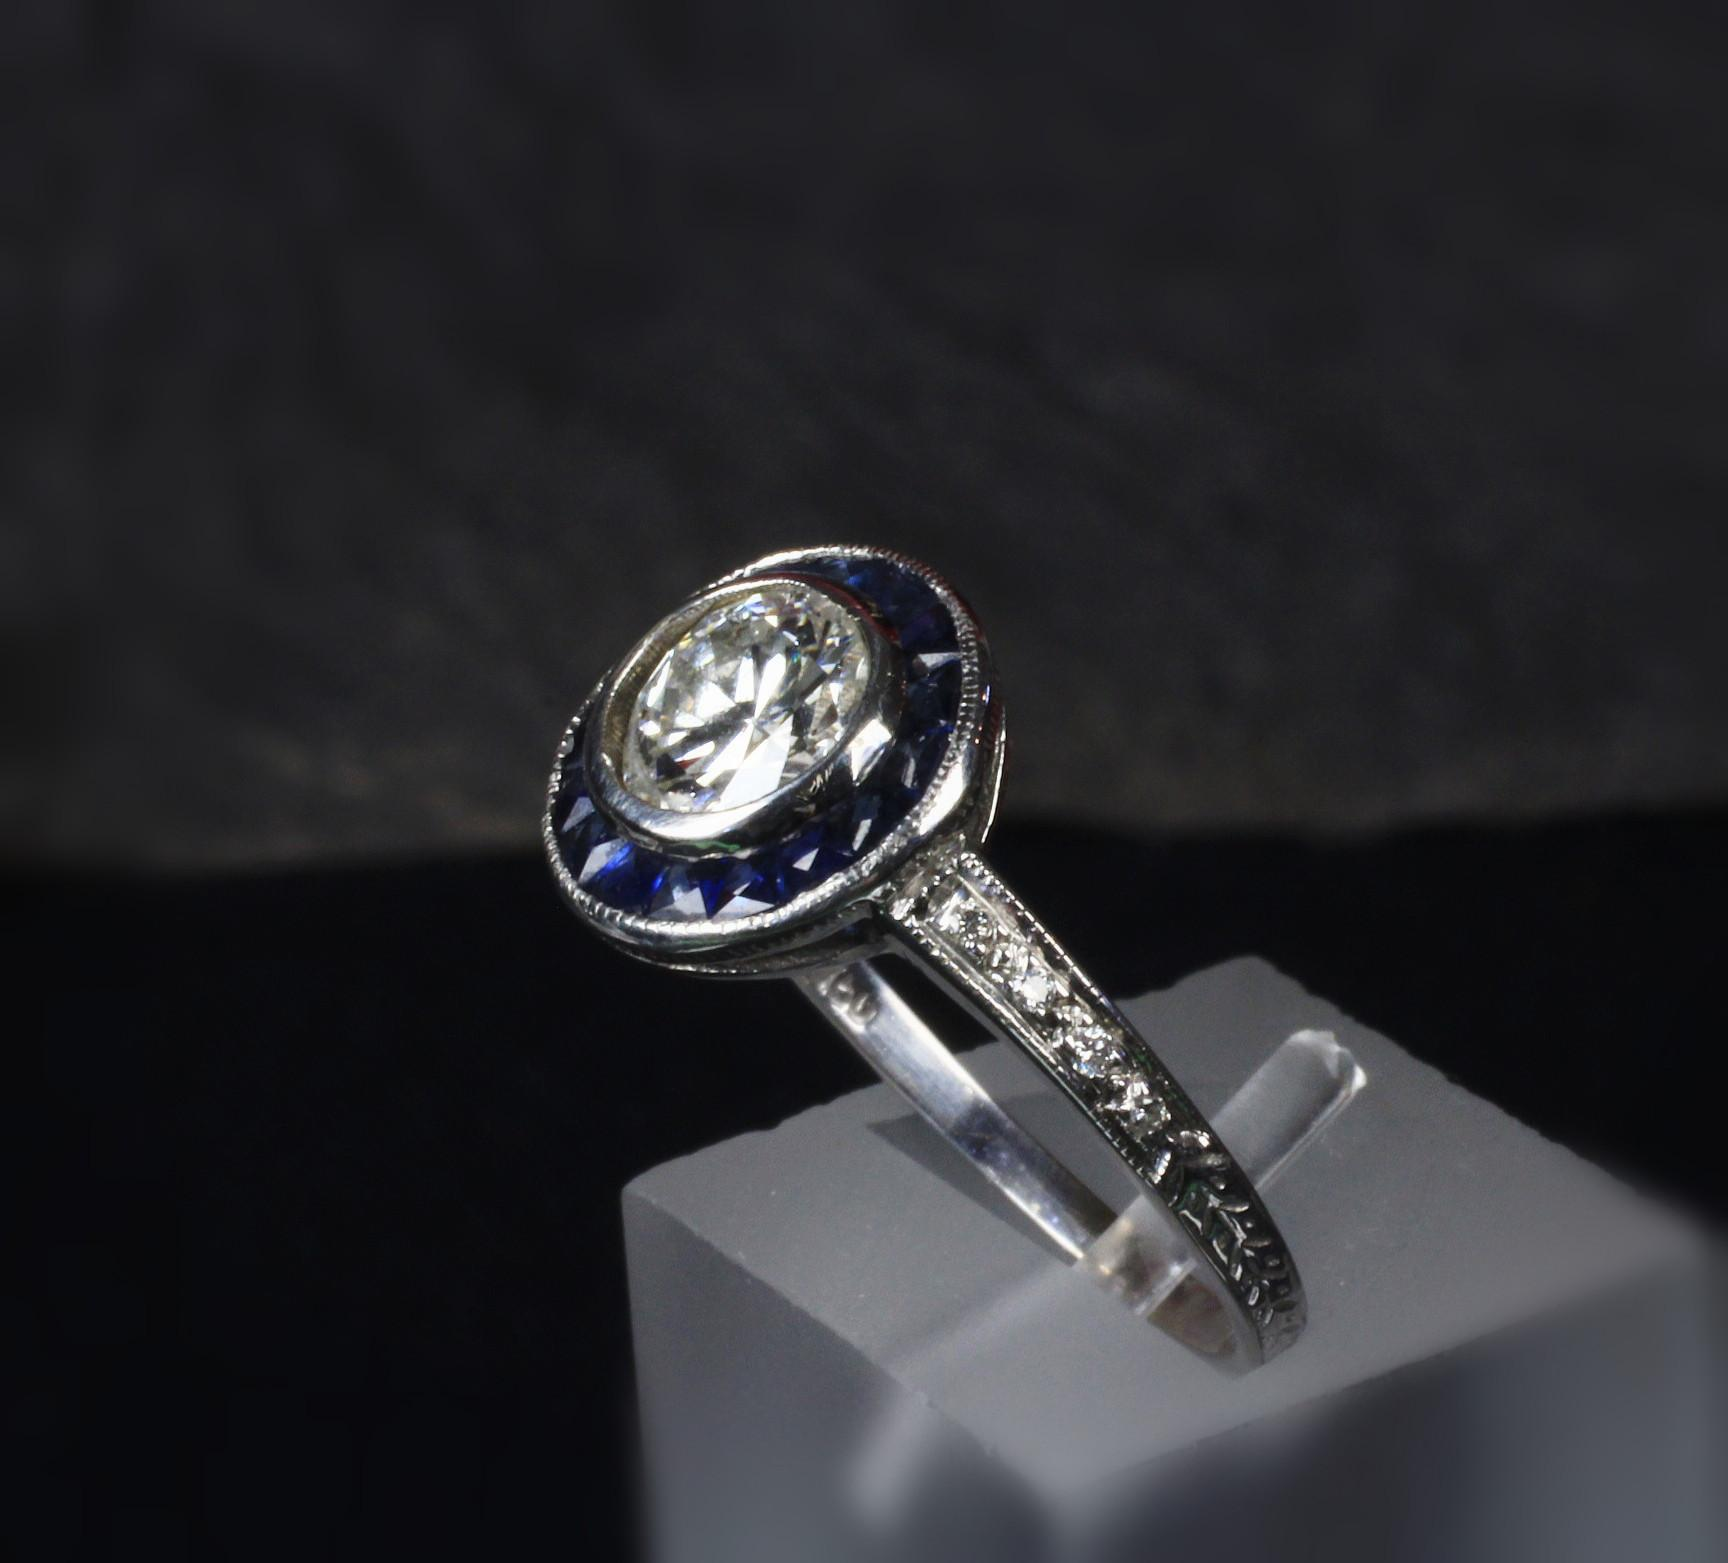 Antique 18K White Gold 0.80 Ct. Euro Cut Diamond and Sapphire Ring